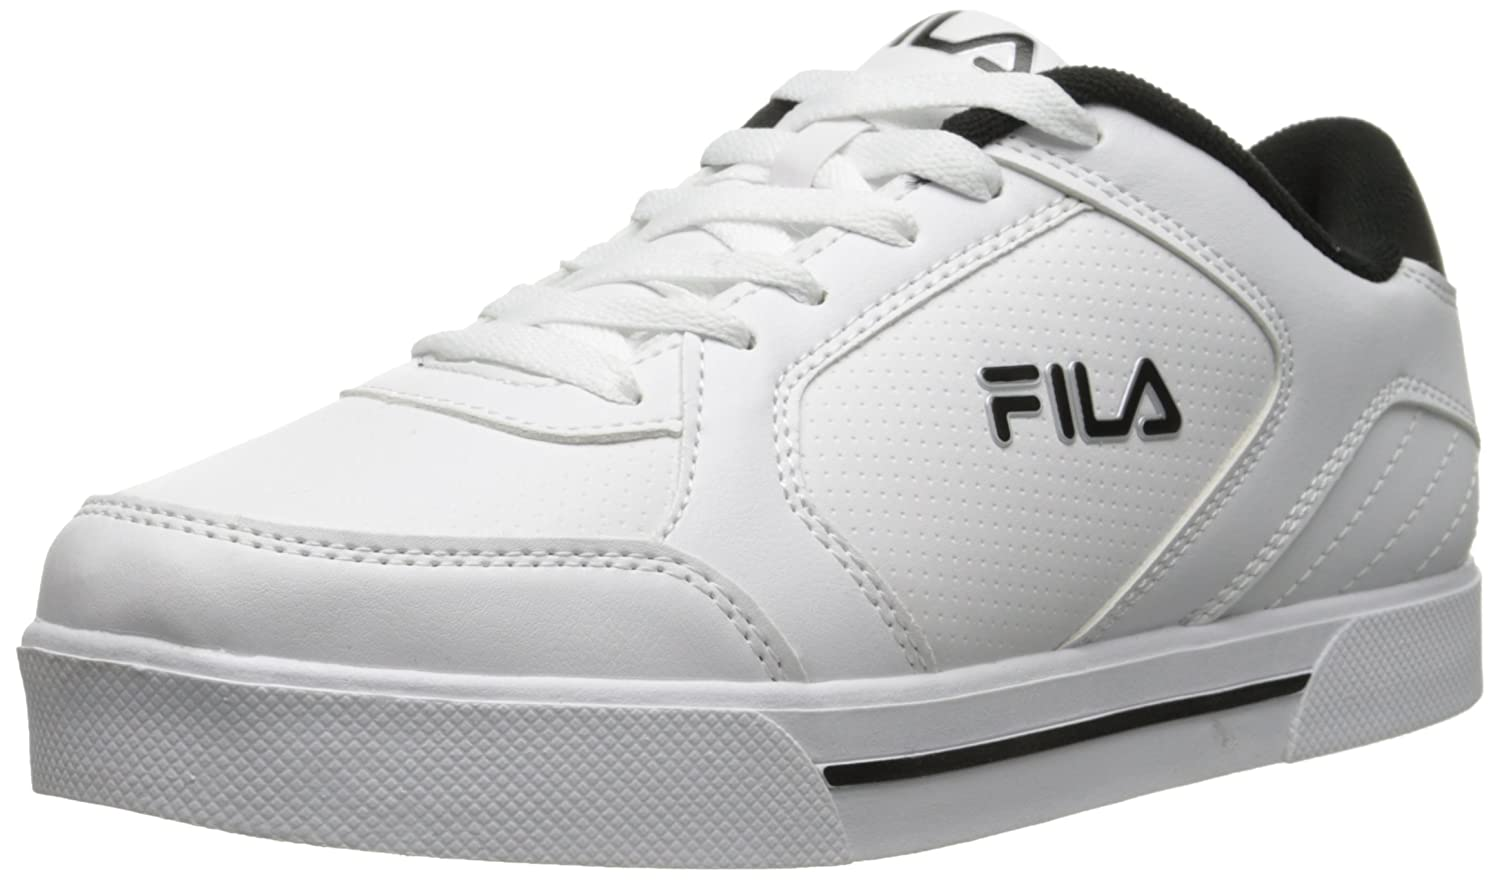 fila tennis shoes mens 2014